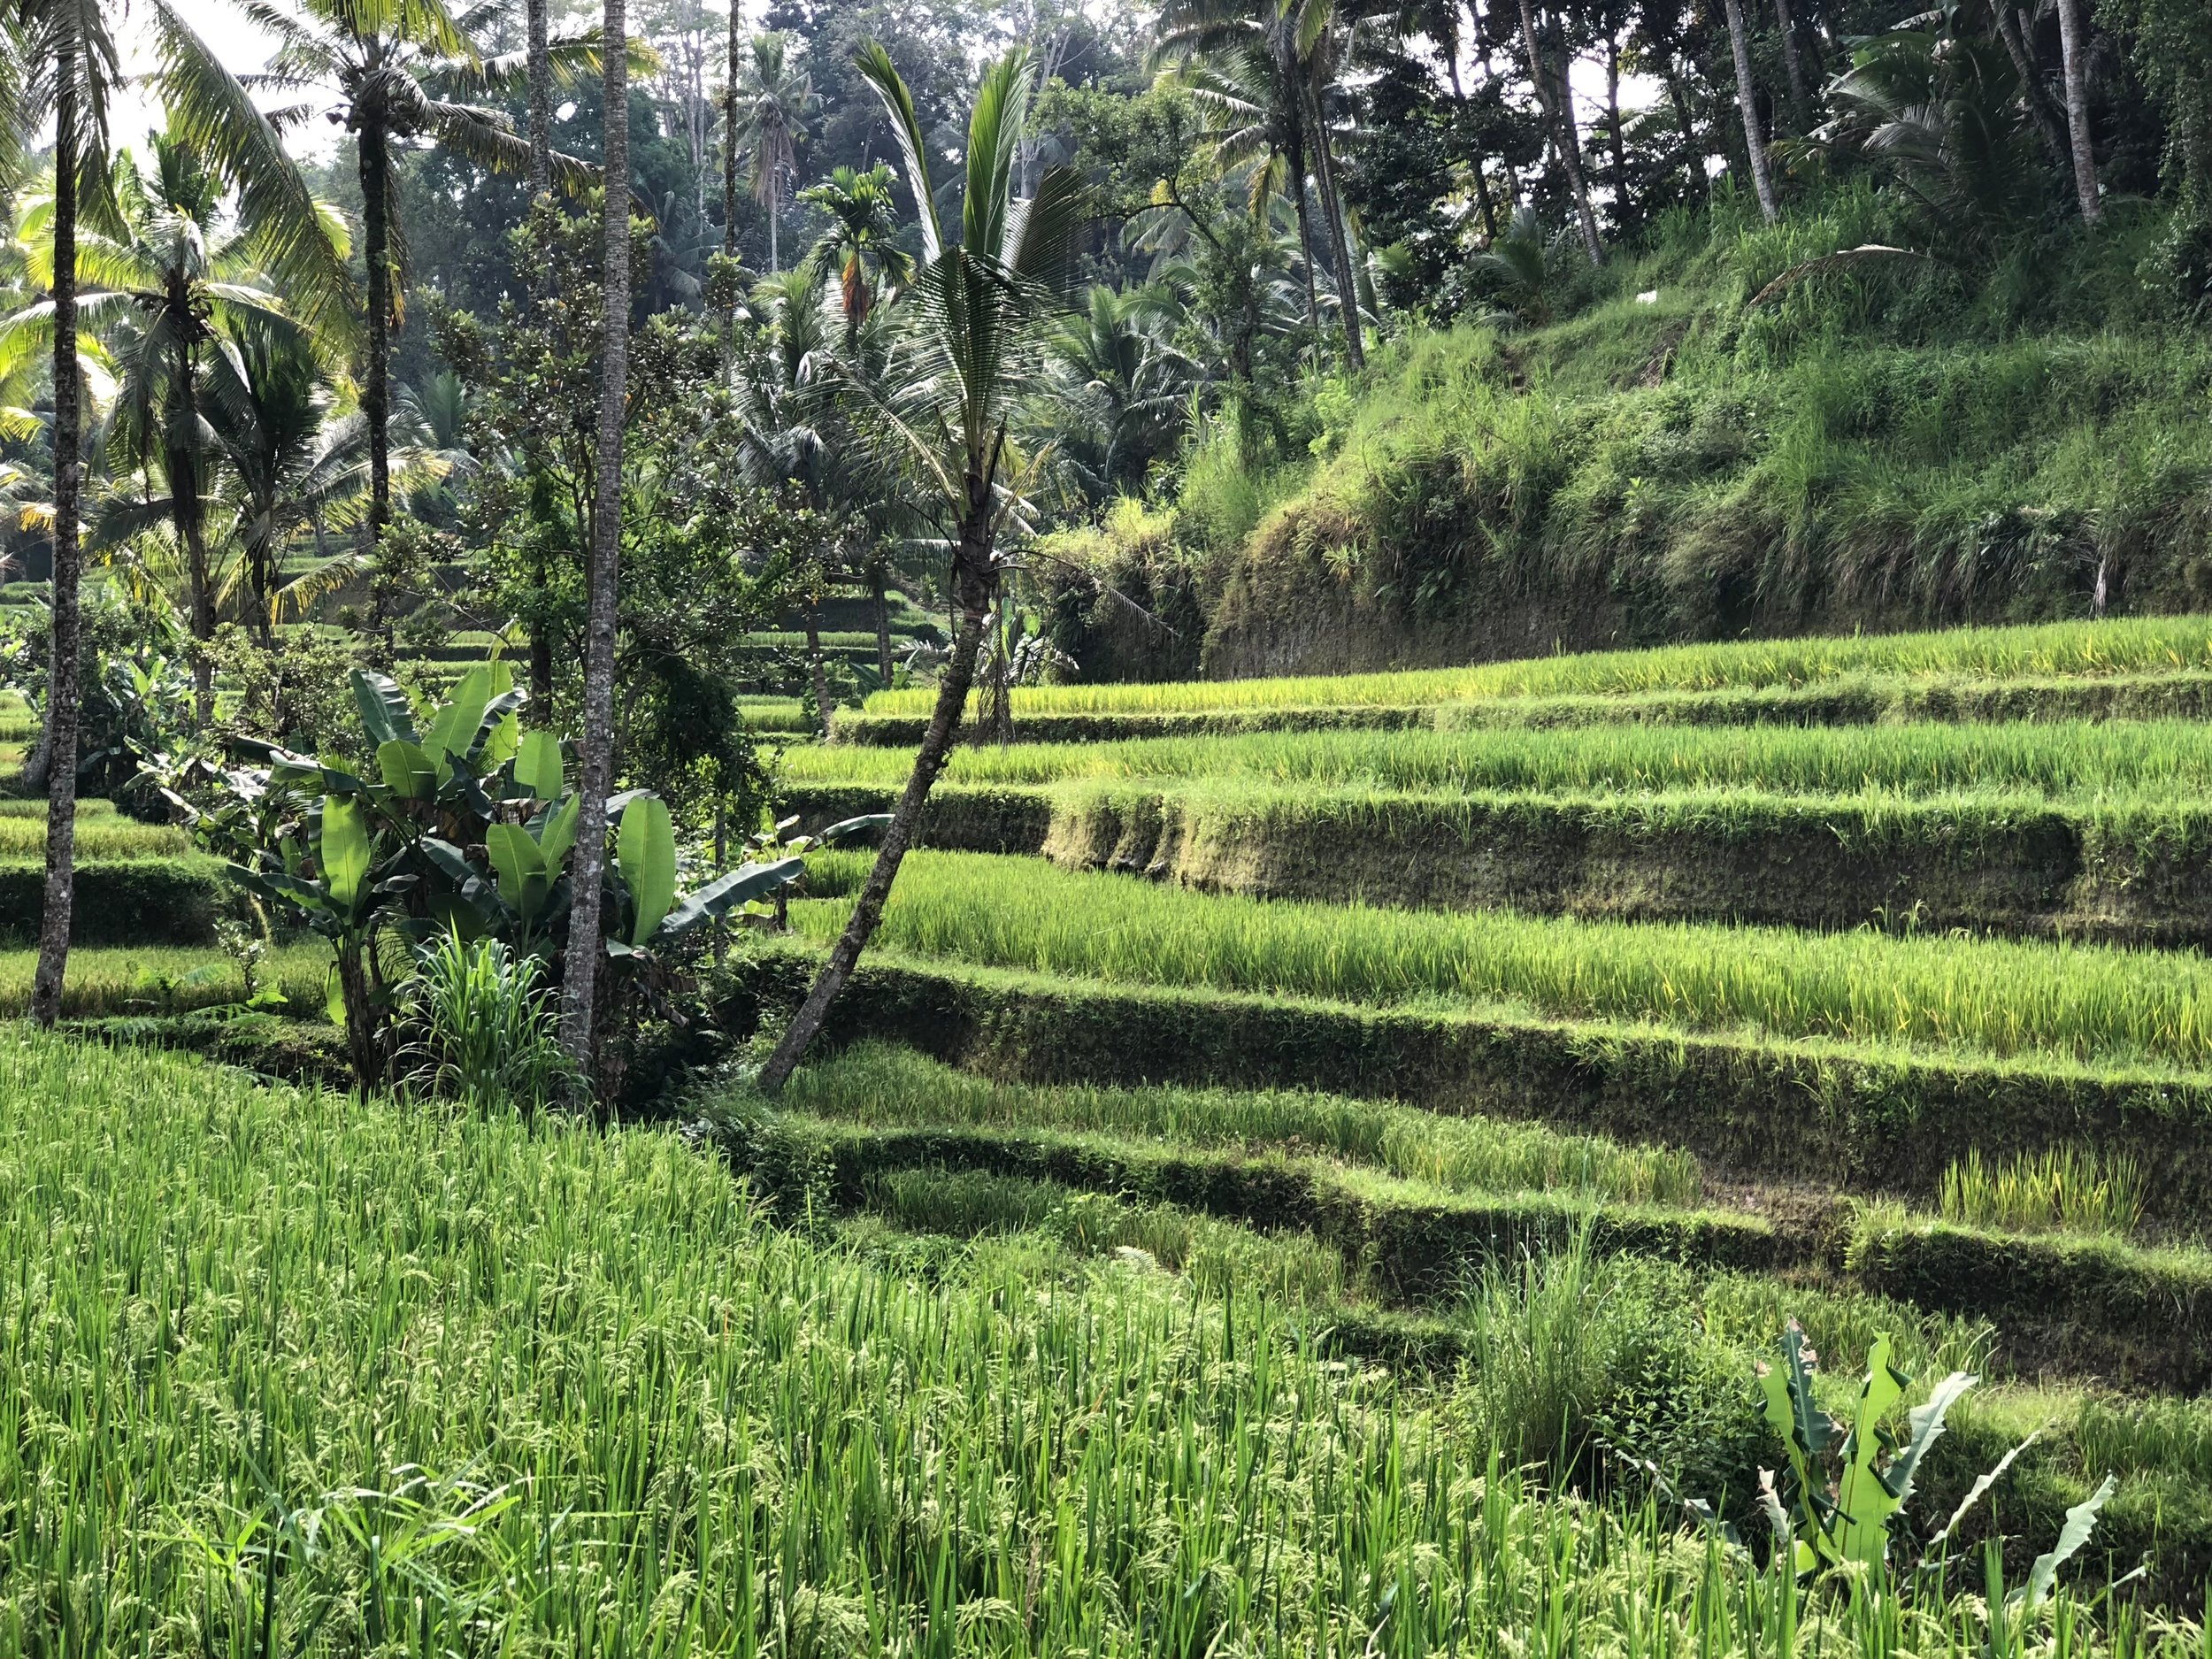 The undulating green hills are iconic of Bali